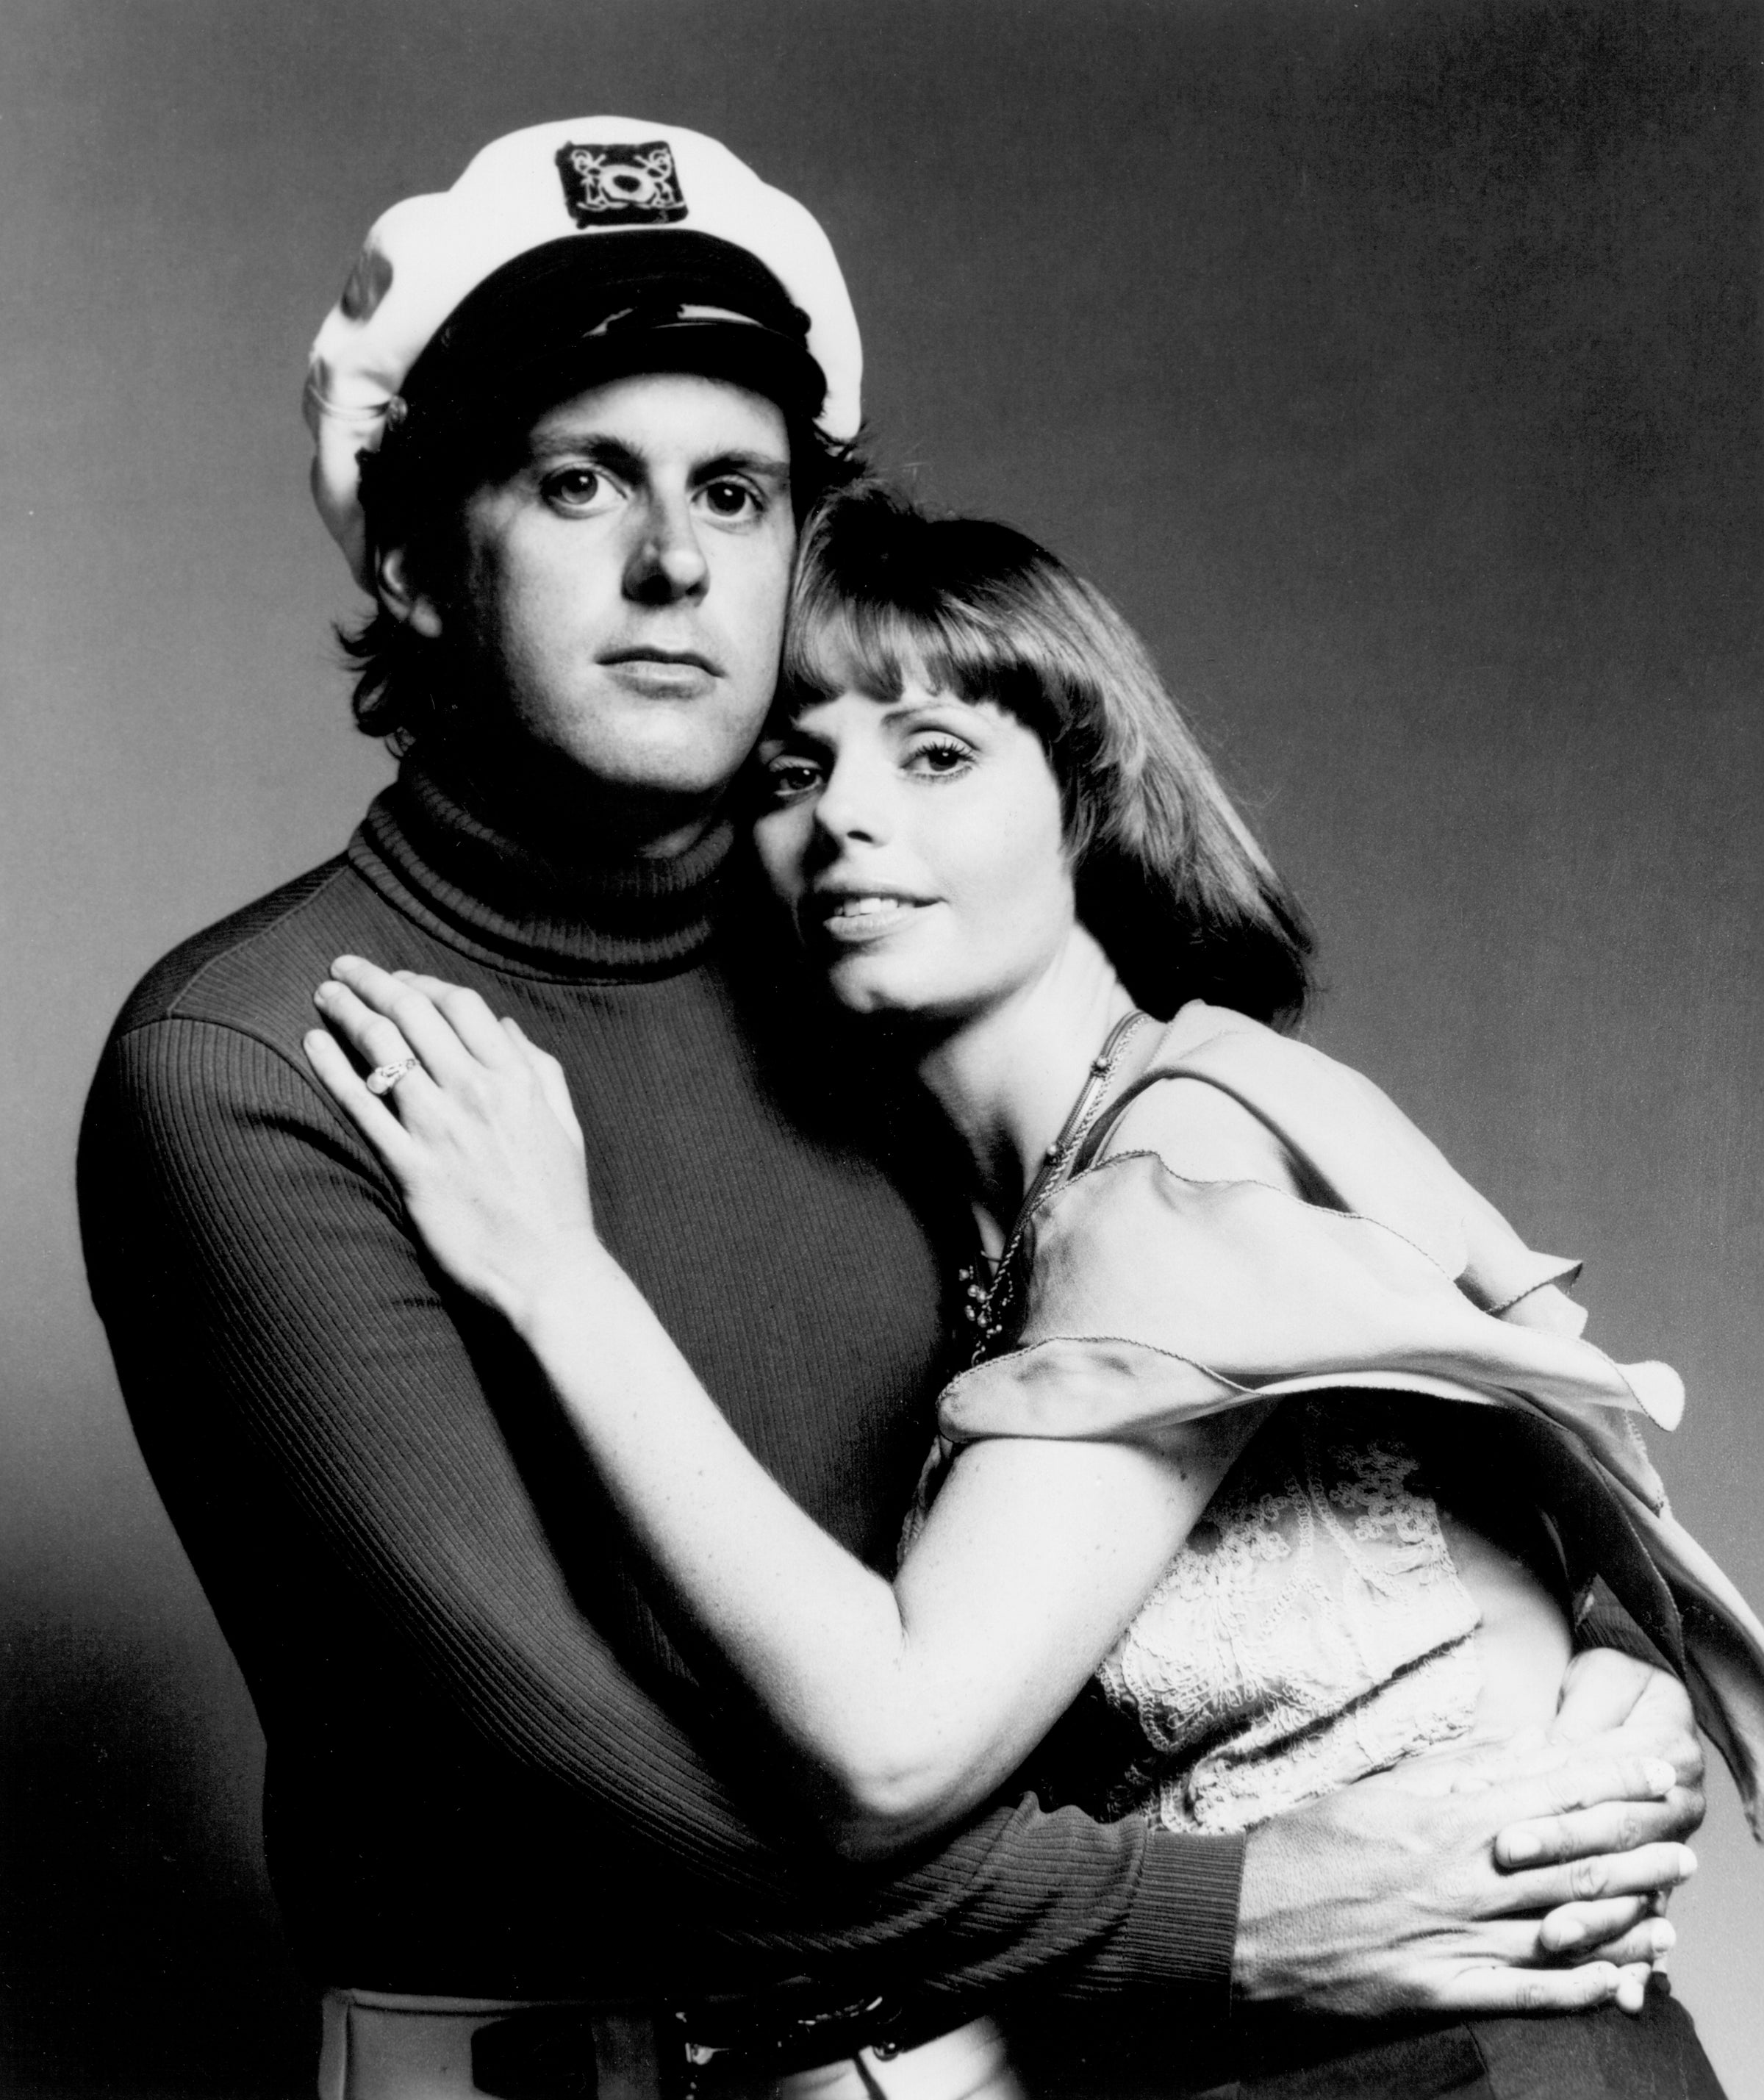 Daryl Dragon, of Captain and Tennille, died at age 76.